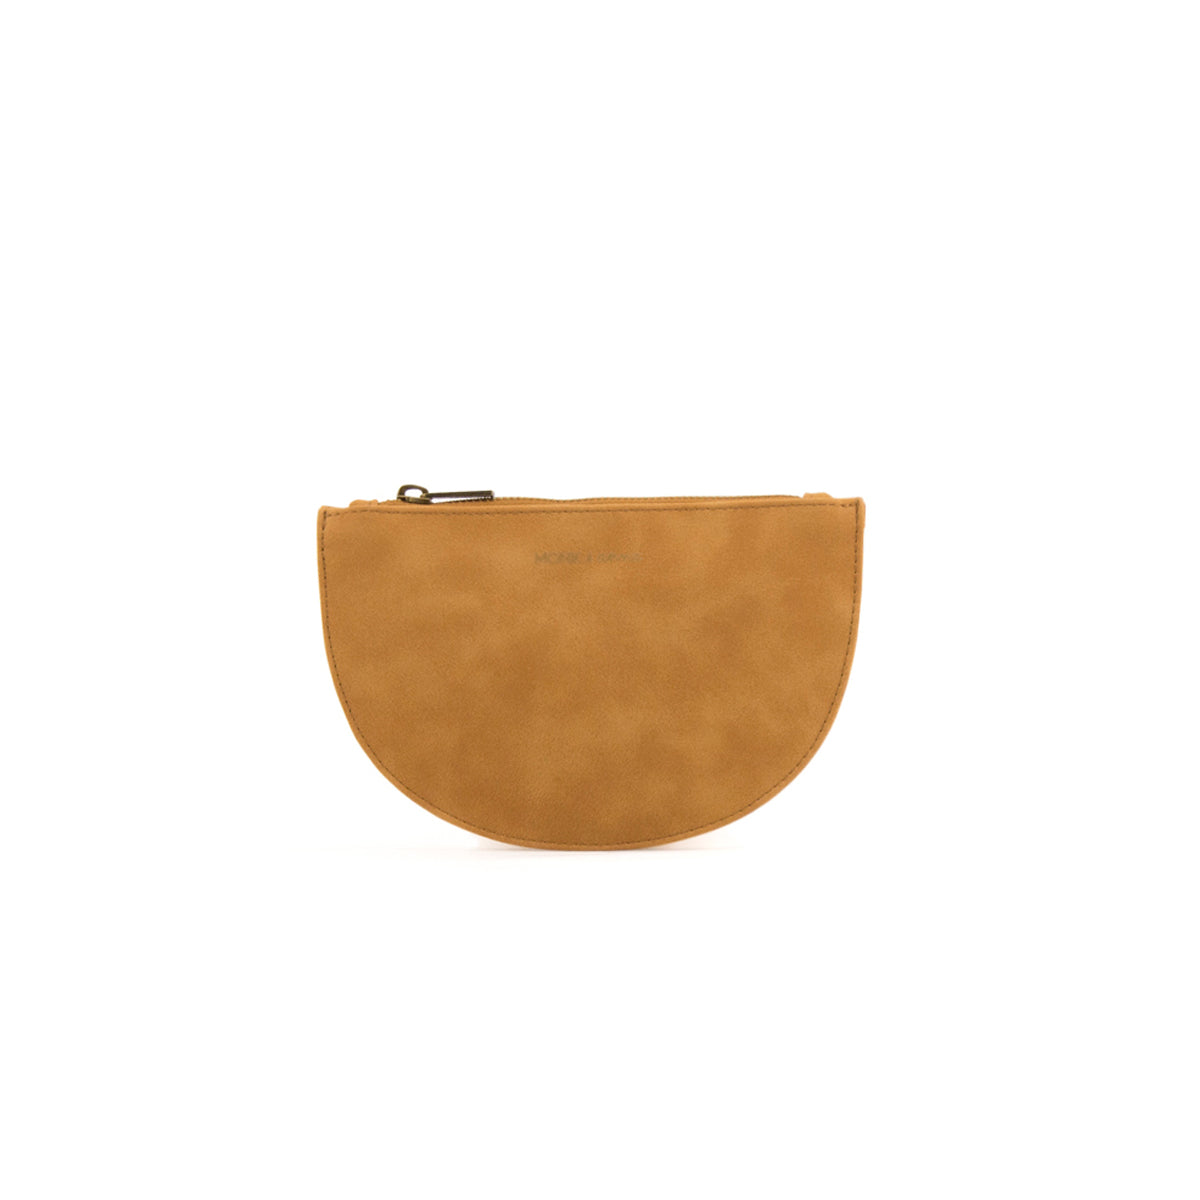 half moon wallet - fudge